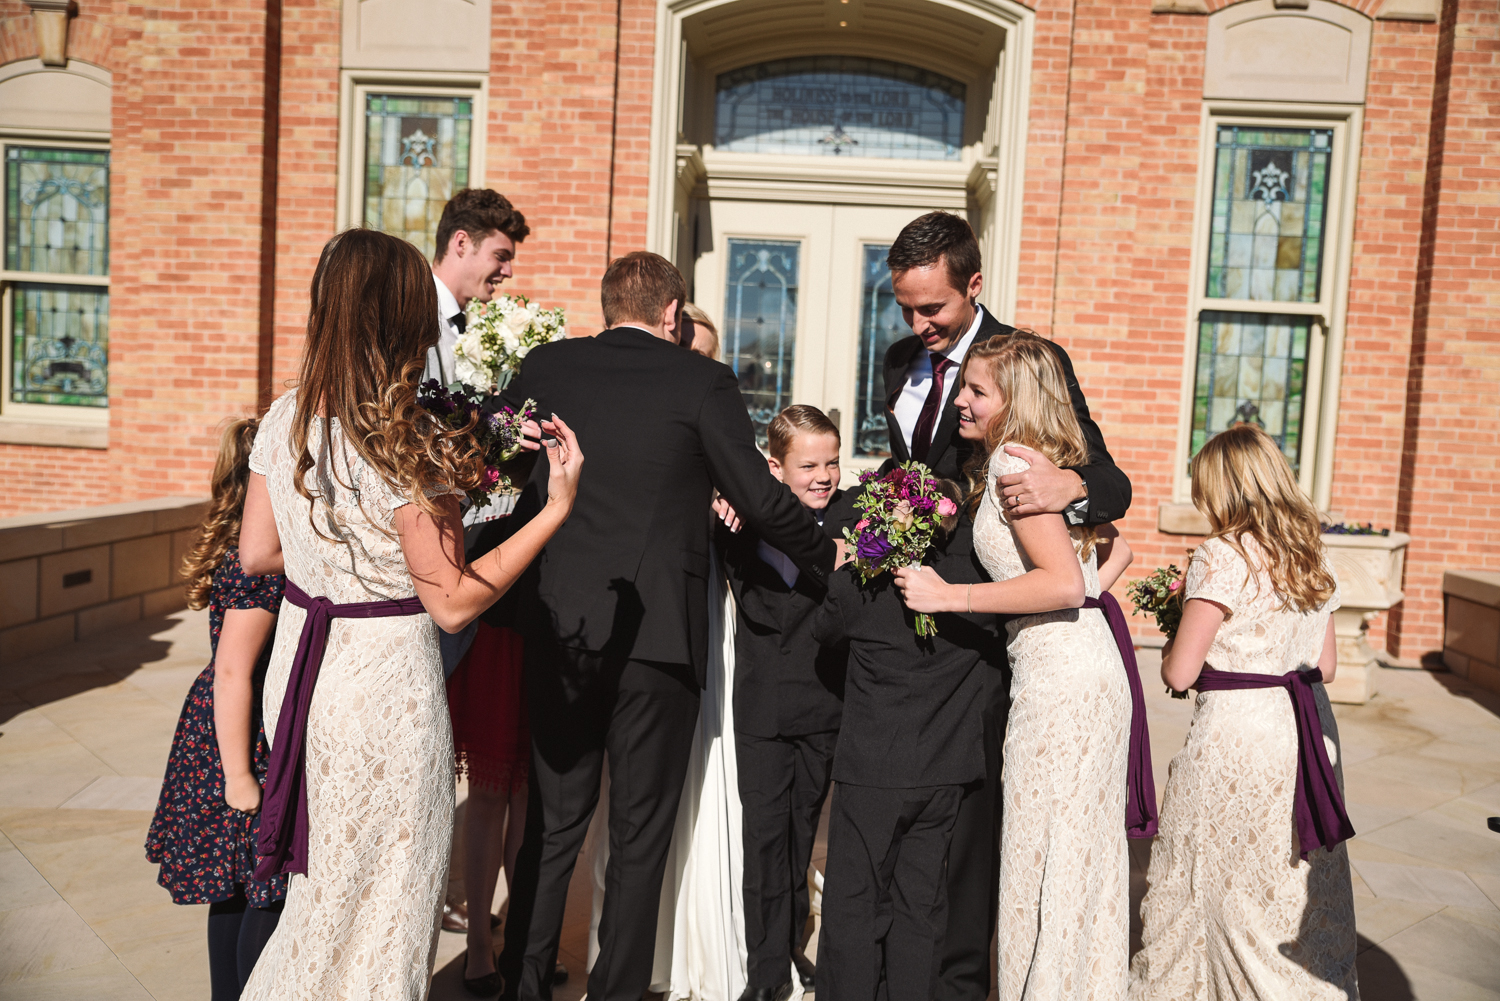 Chase Lindsey wedding day blog-15.jpg